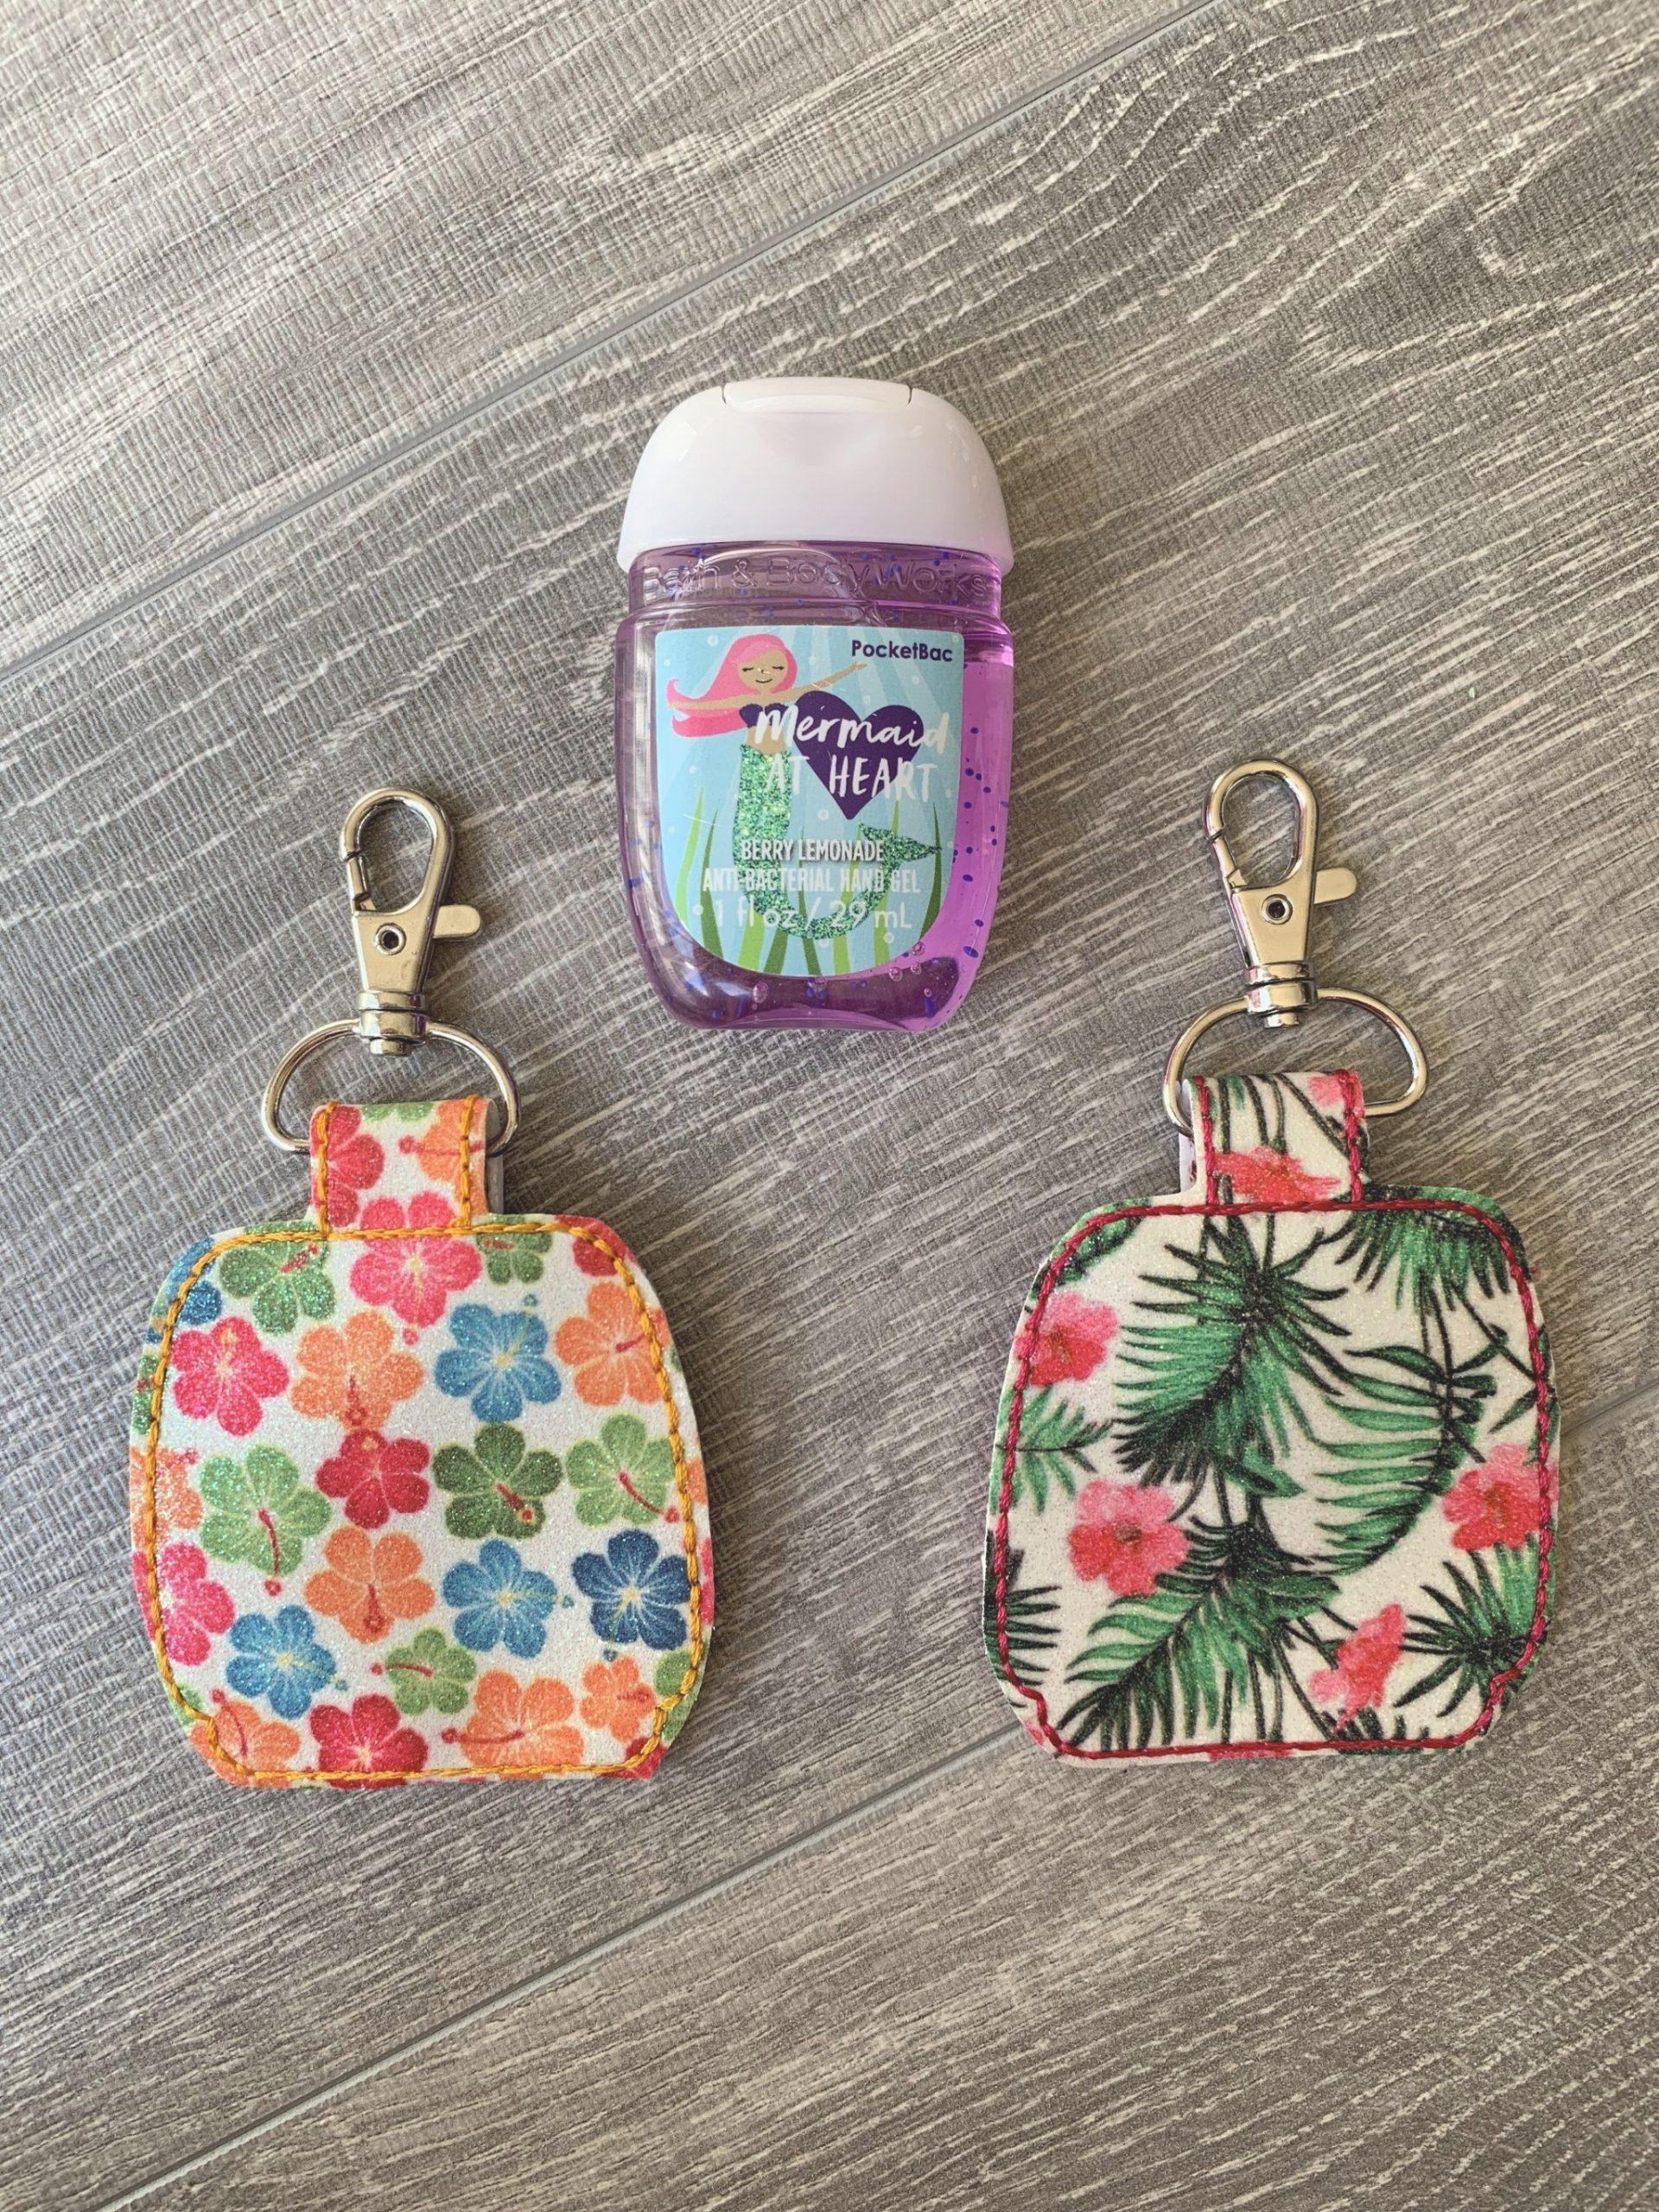 Pin On Creative Sew in Hand Sanitizer Holder Diy